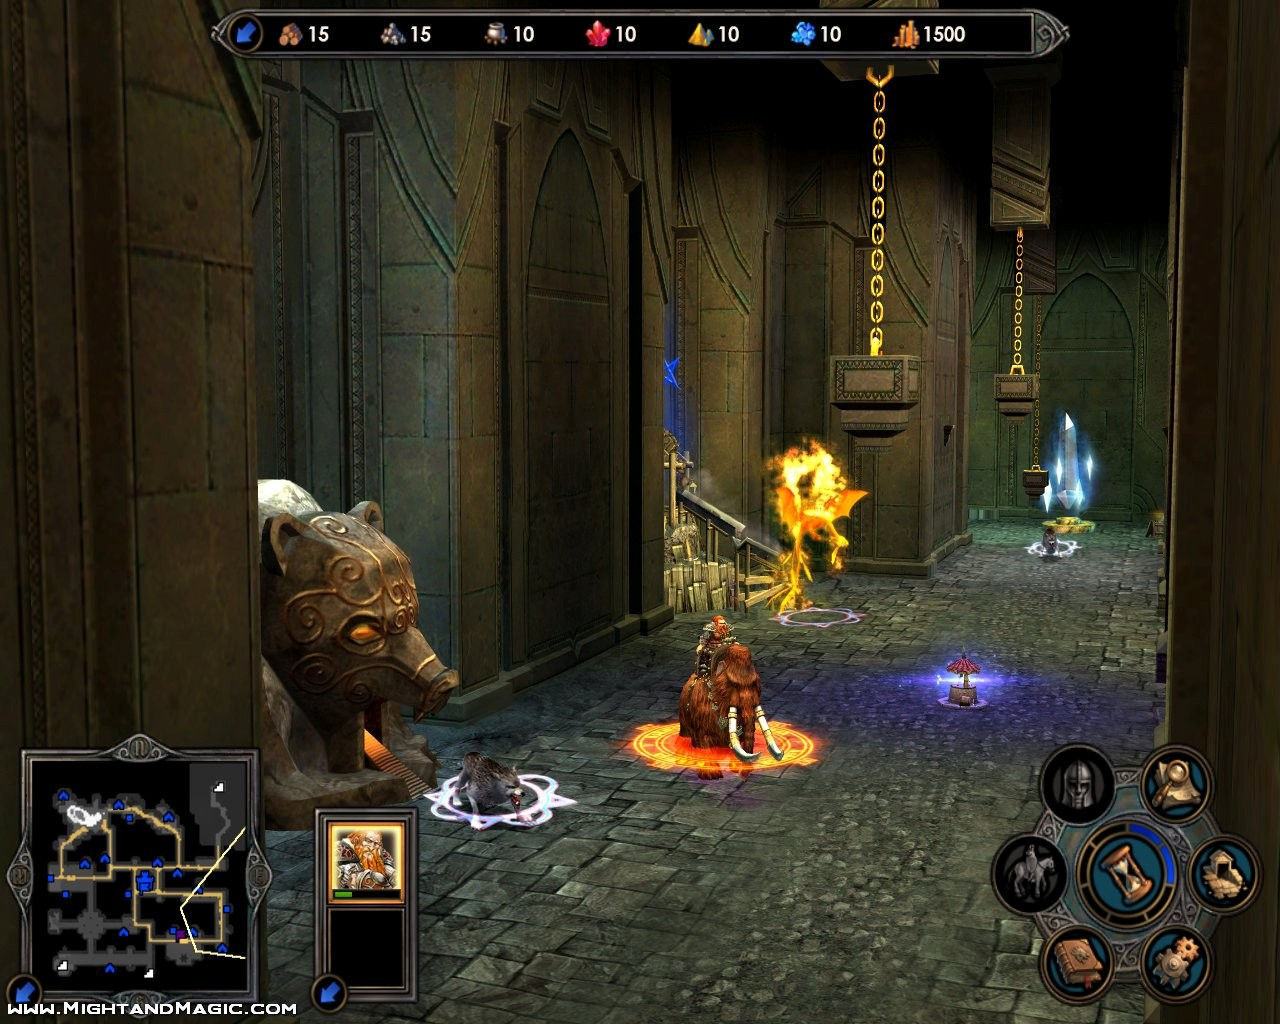 Heroes of Might and Magic V: Hammers of Fate (Pantallazo de PC) a